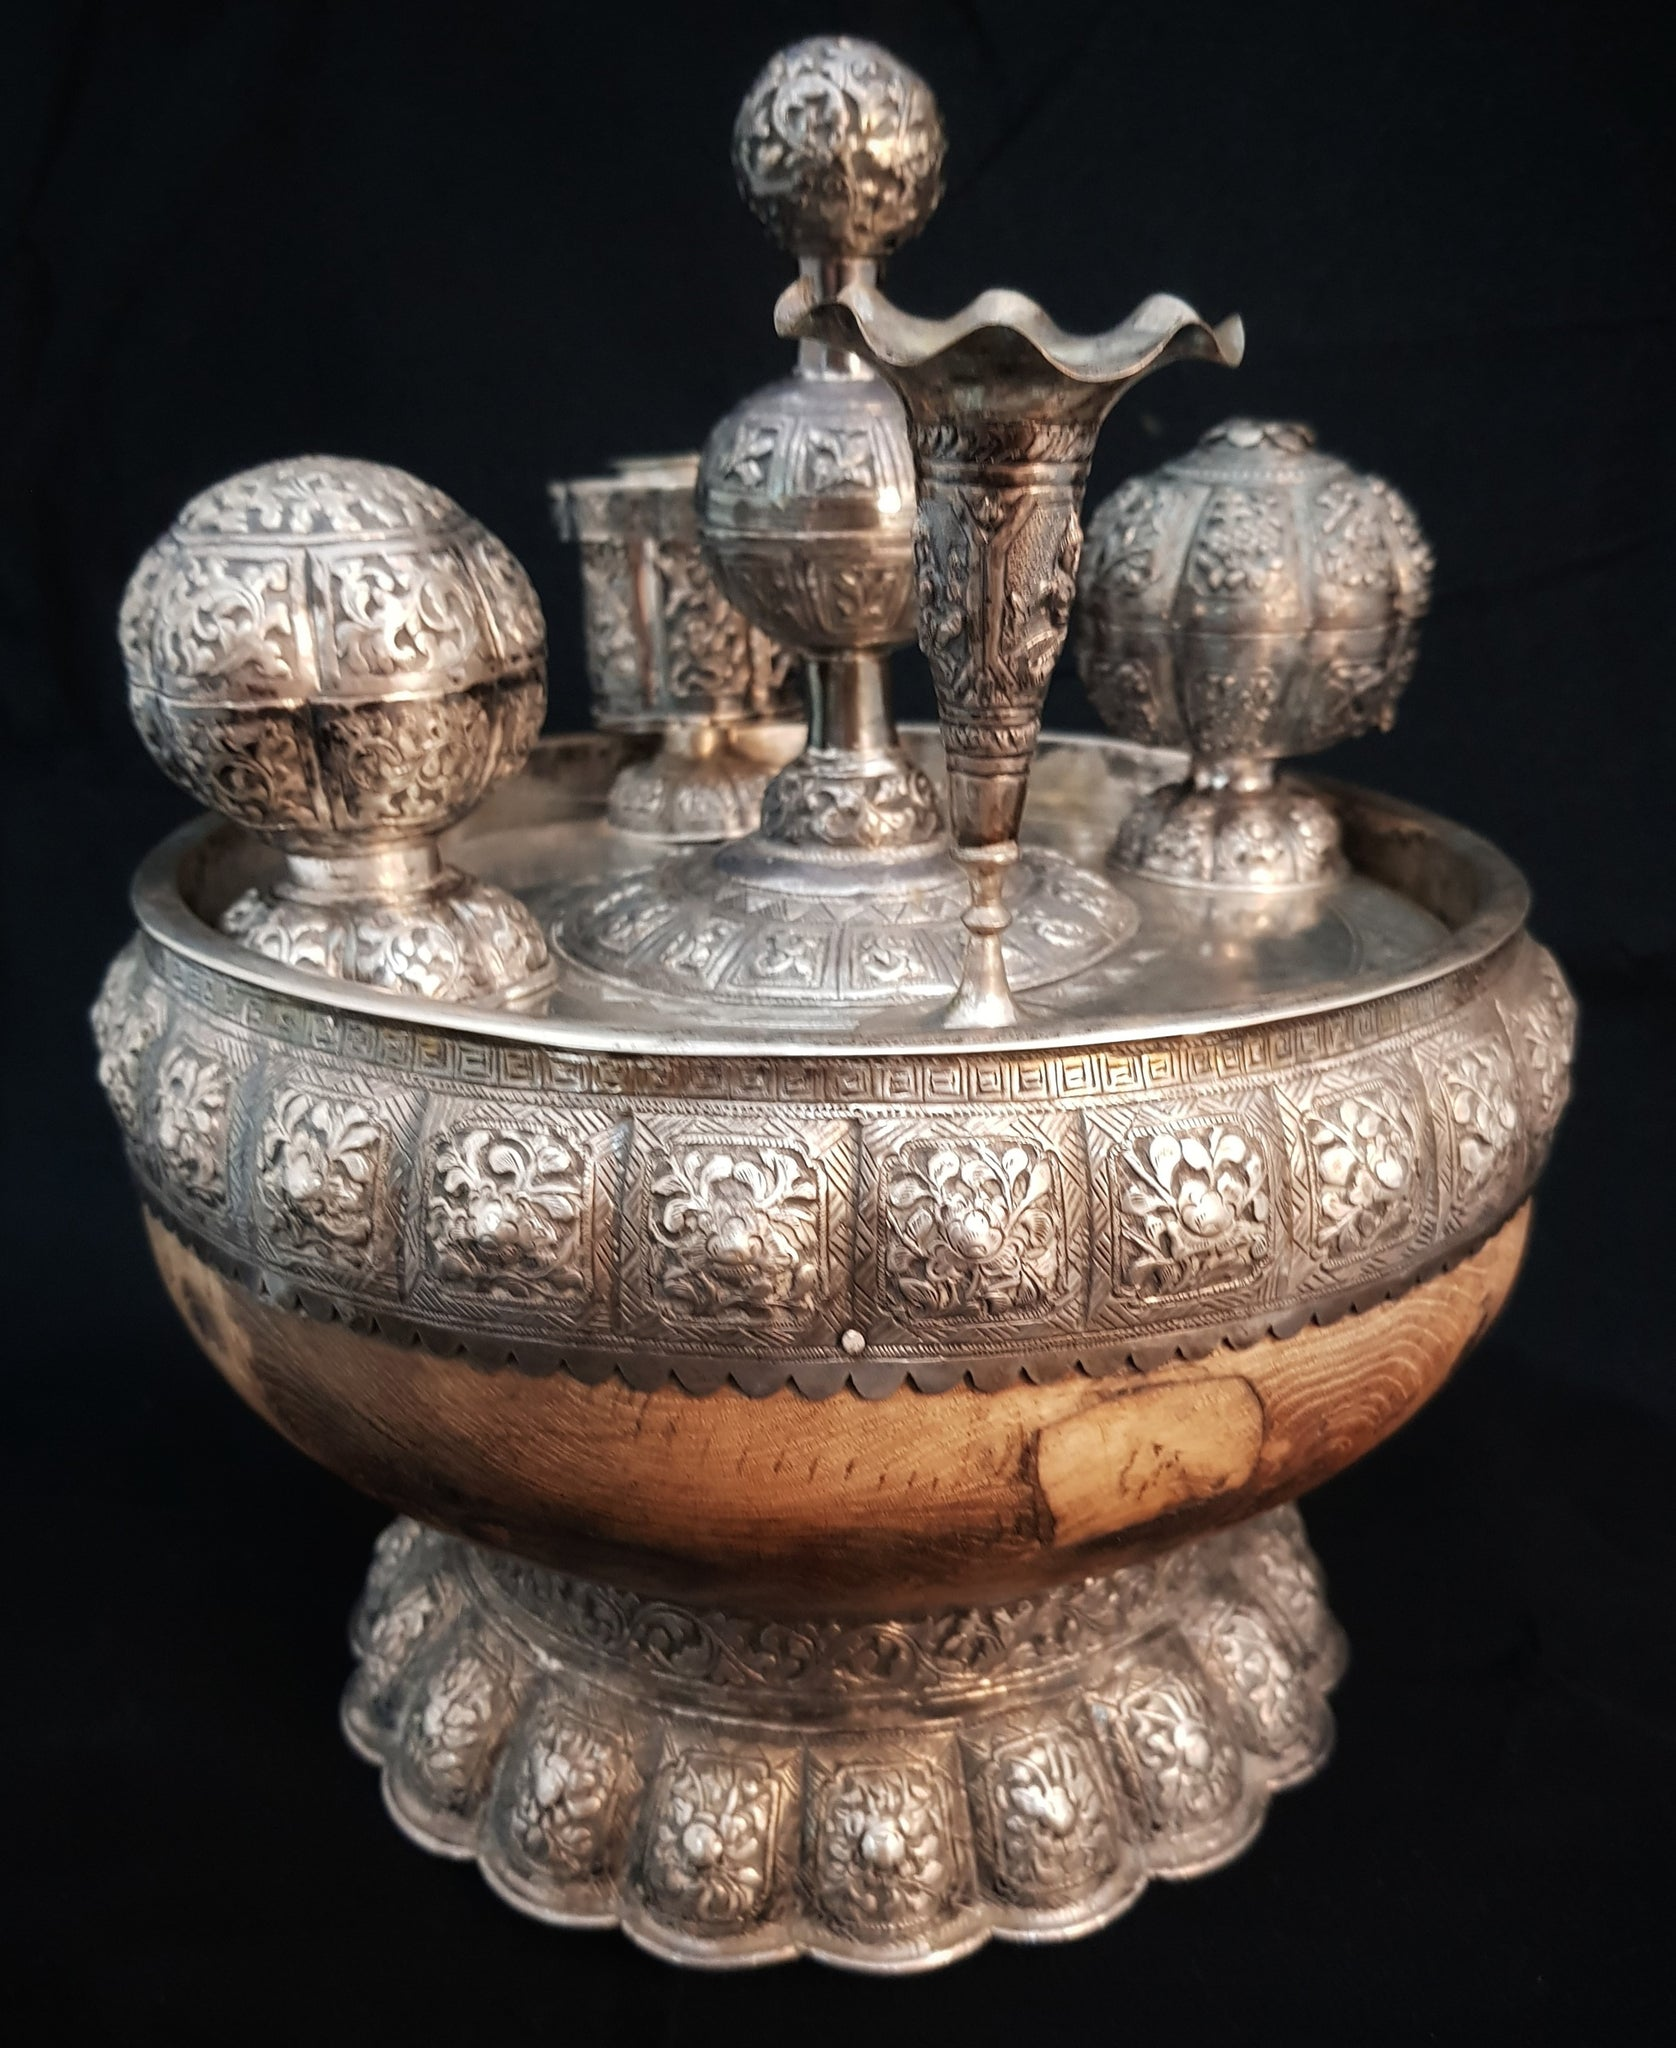 South East Asian Silver & Wood Betel Nut Bowl